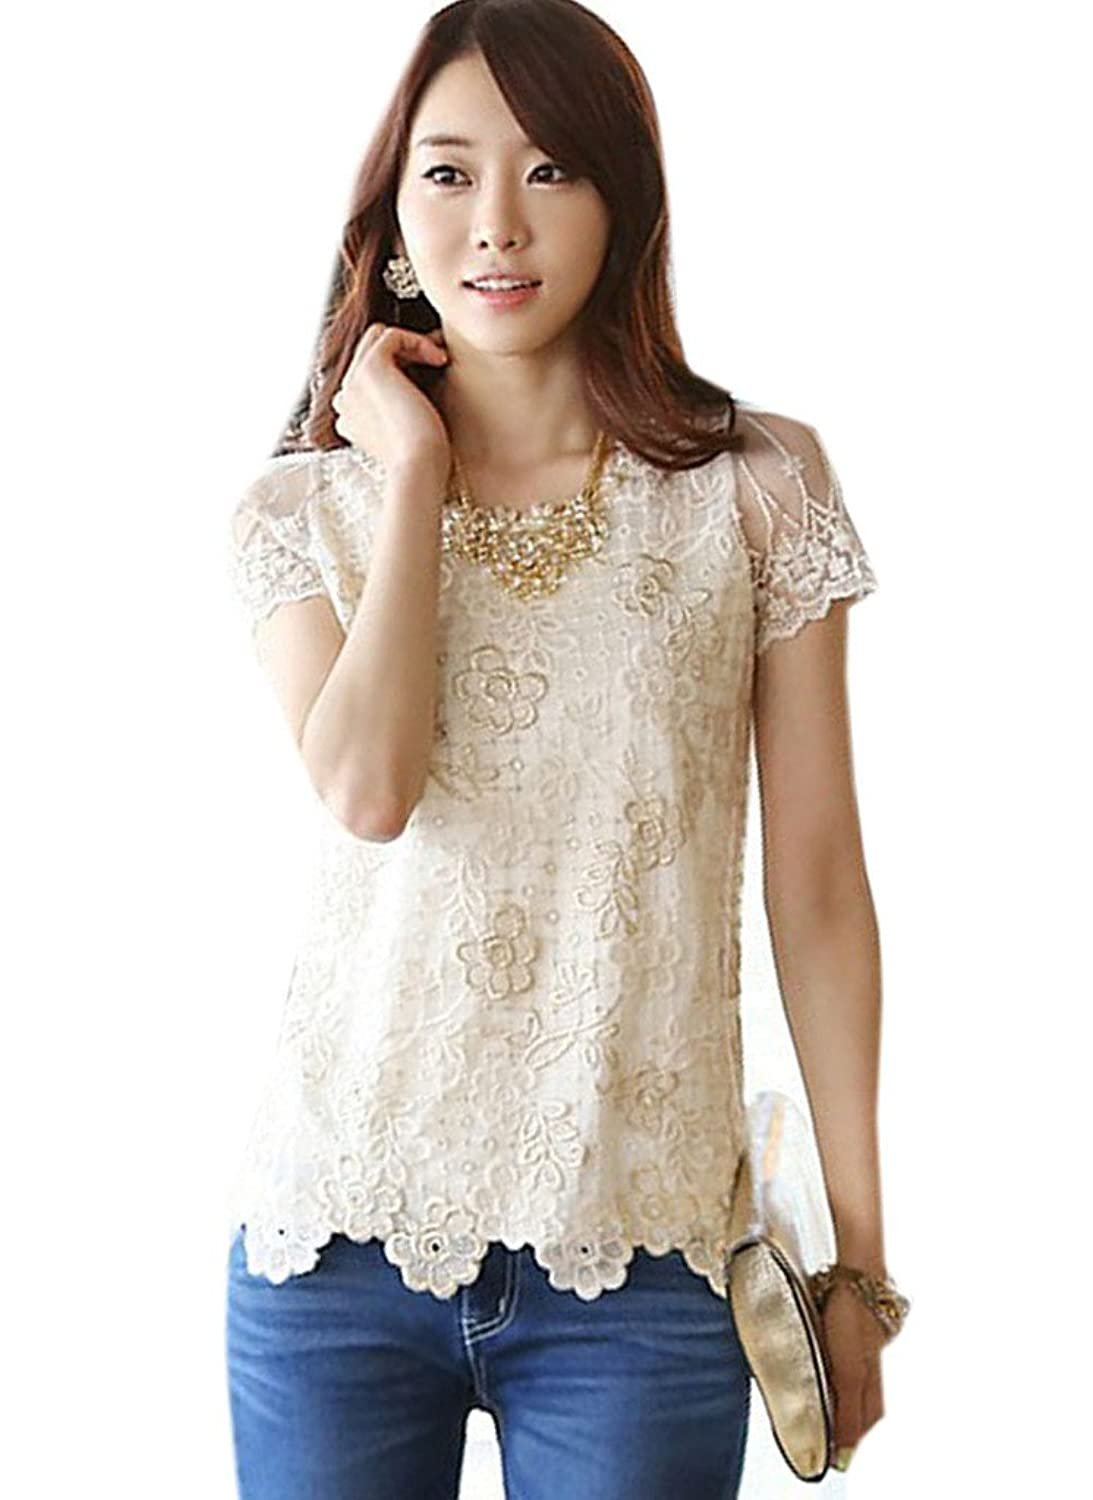 Buy-Box Women's Short Sleeve Lace Shirt Chiffon Mesh Blouse